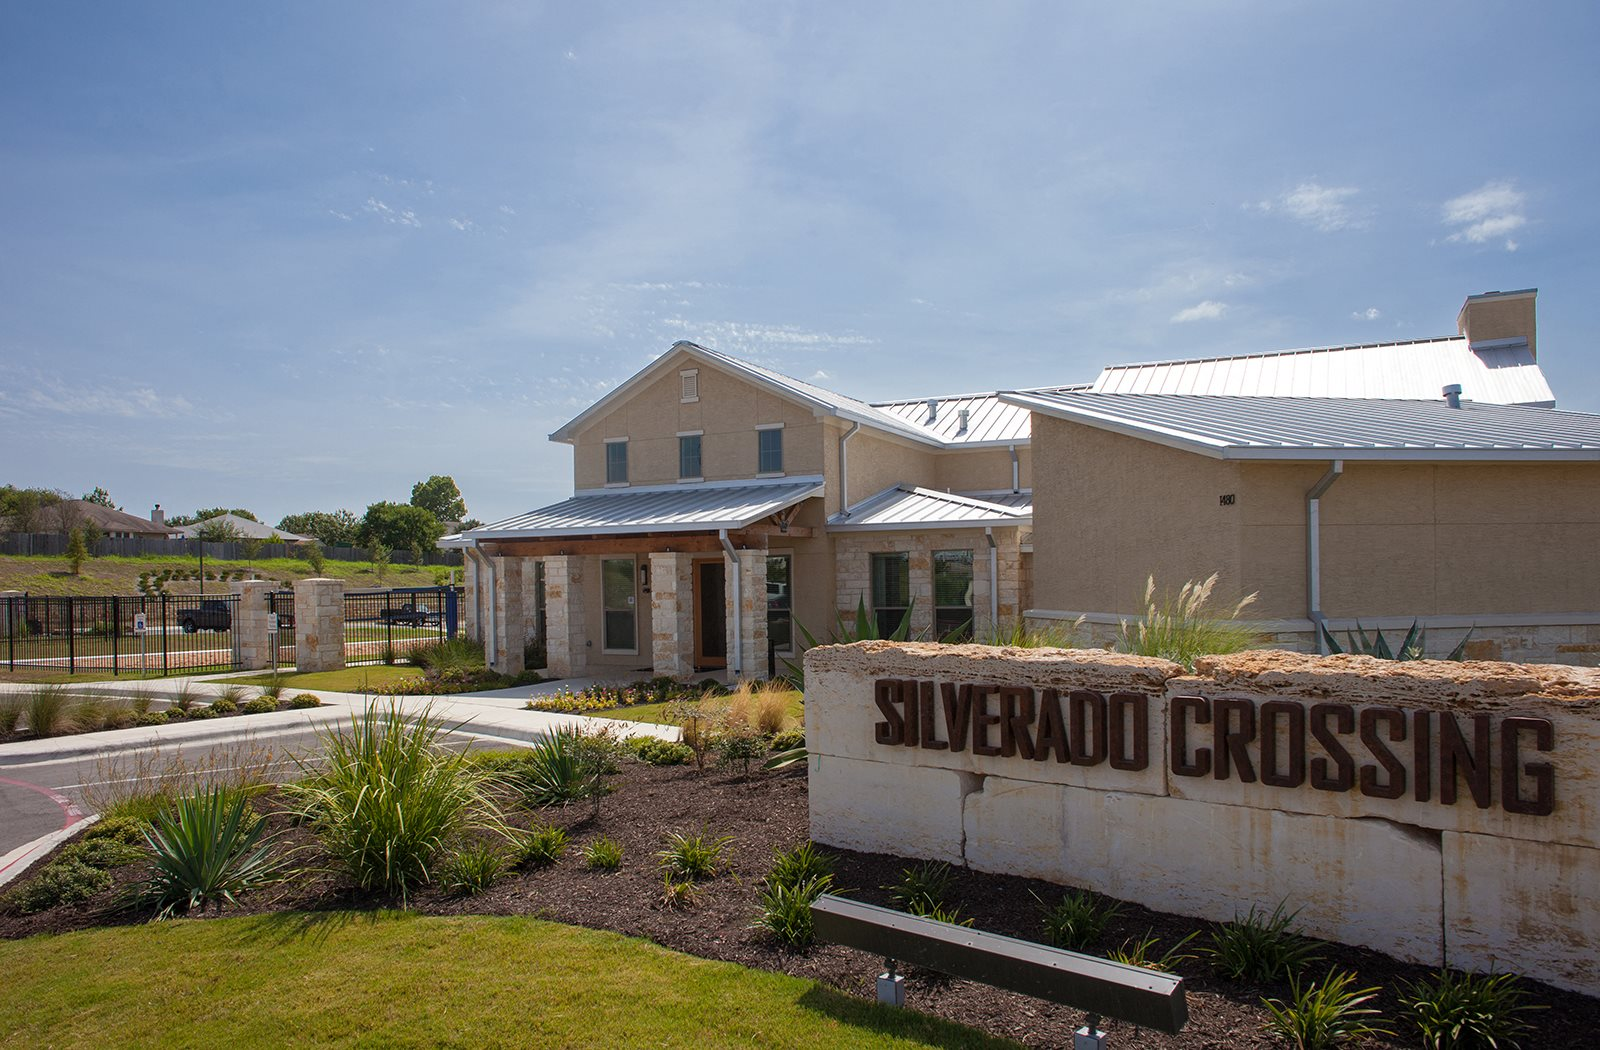 Silverado Crossing | Apartments in Buda, TX